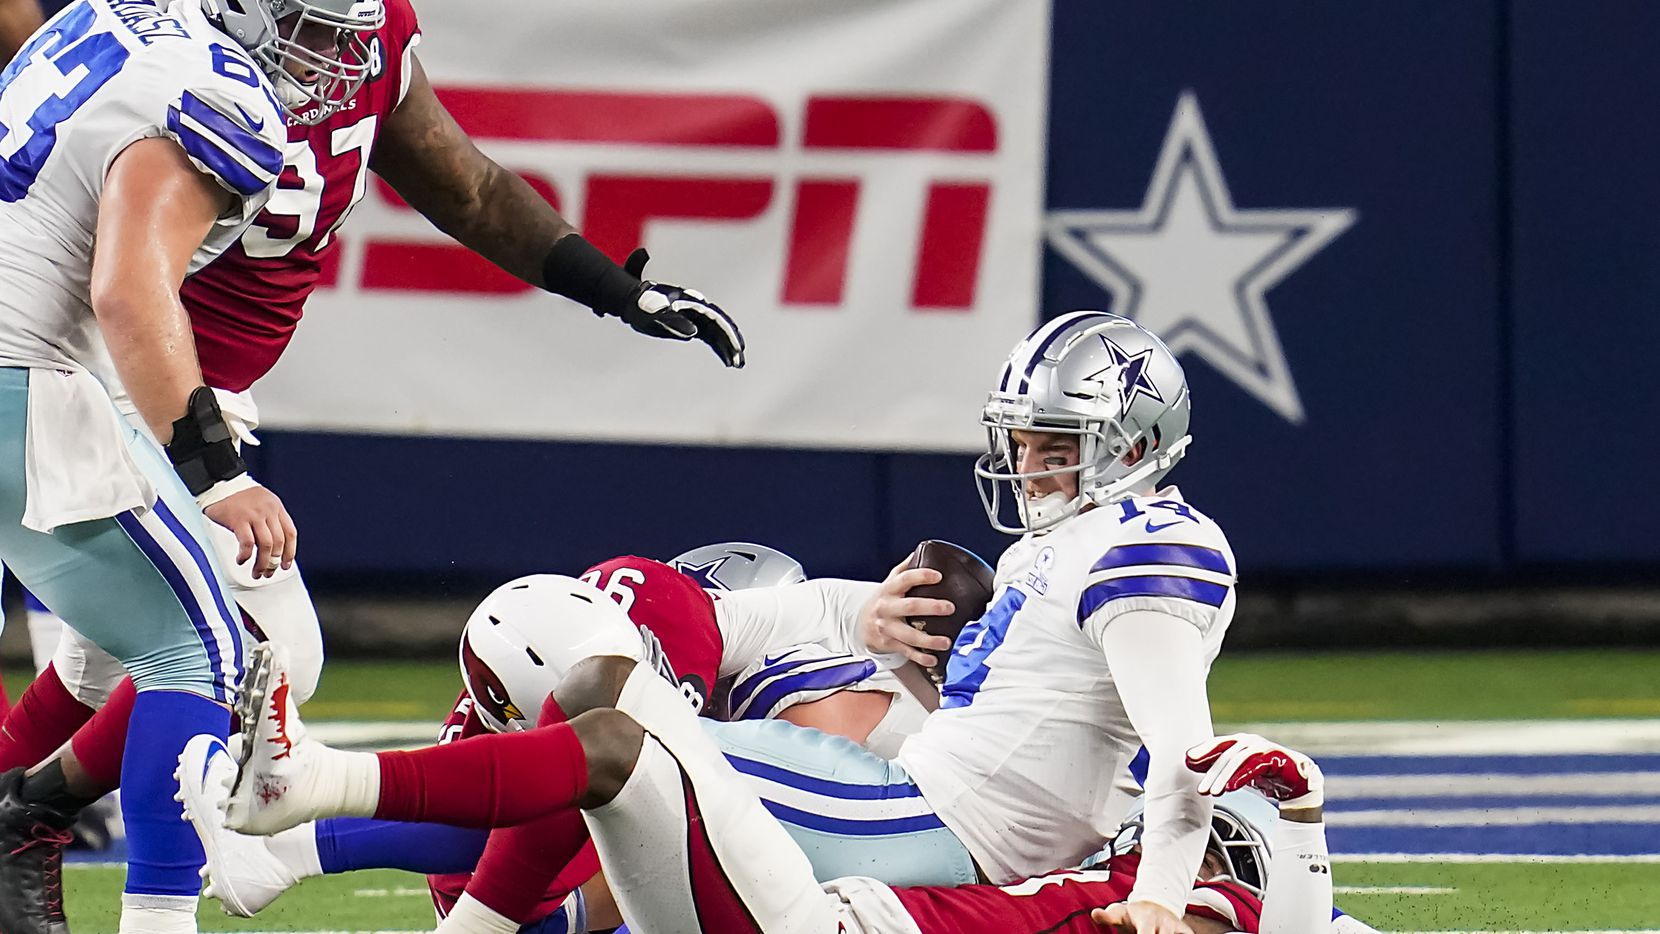 Dallas Cowboys quarterback Andy Dalton (14) is sacked by Arizona Cardinals outside linebacker Haason Reddick (43) during the second quarter of an NFL football game at AT&T Stadium on Monday, Oct. 19, 2020, in Arlington.